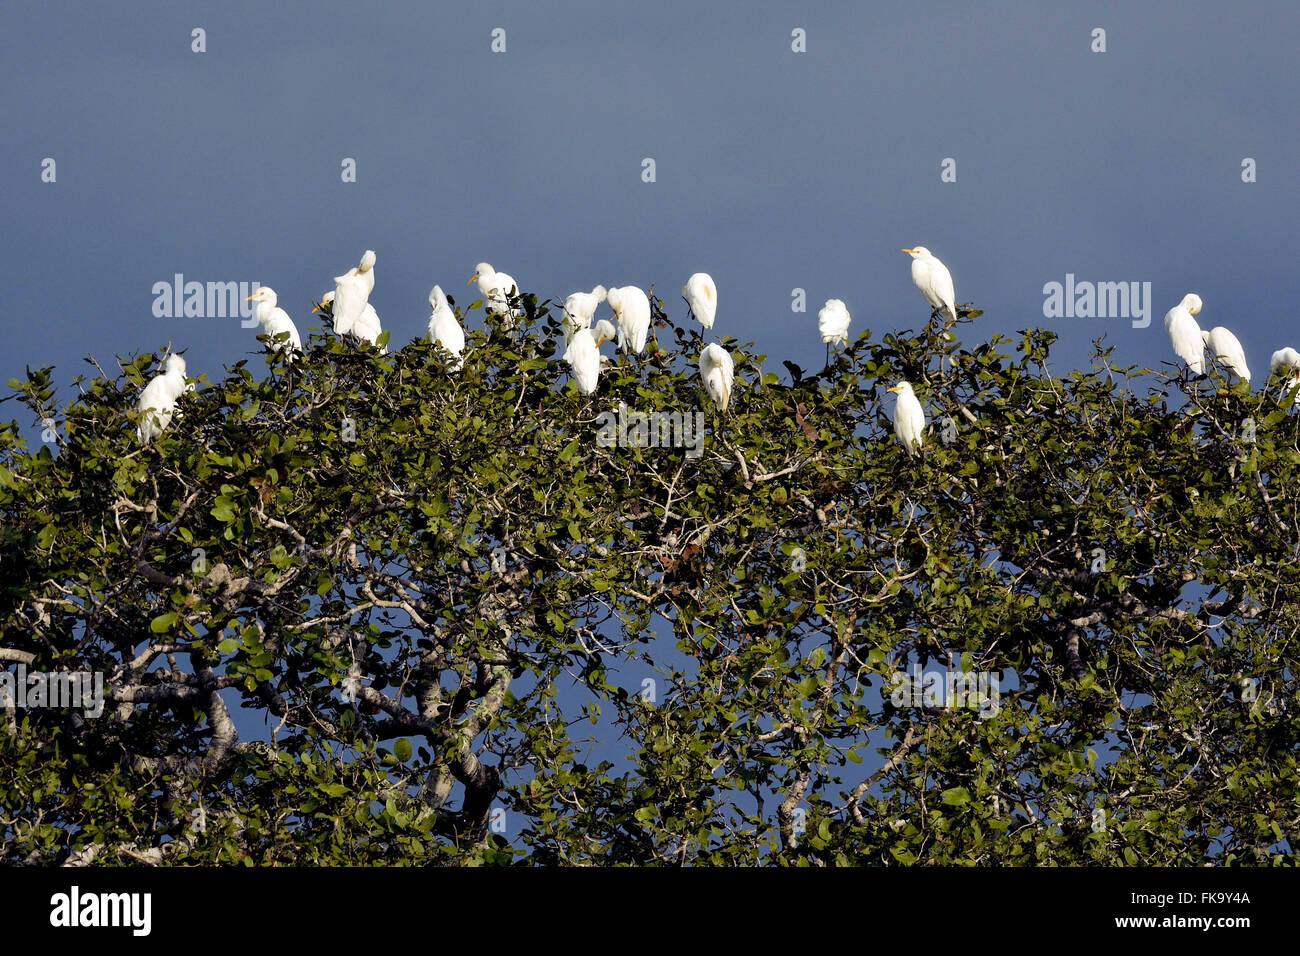 Birds in the canopy of a tree - Stock Image